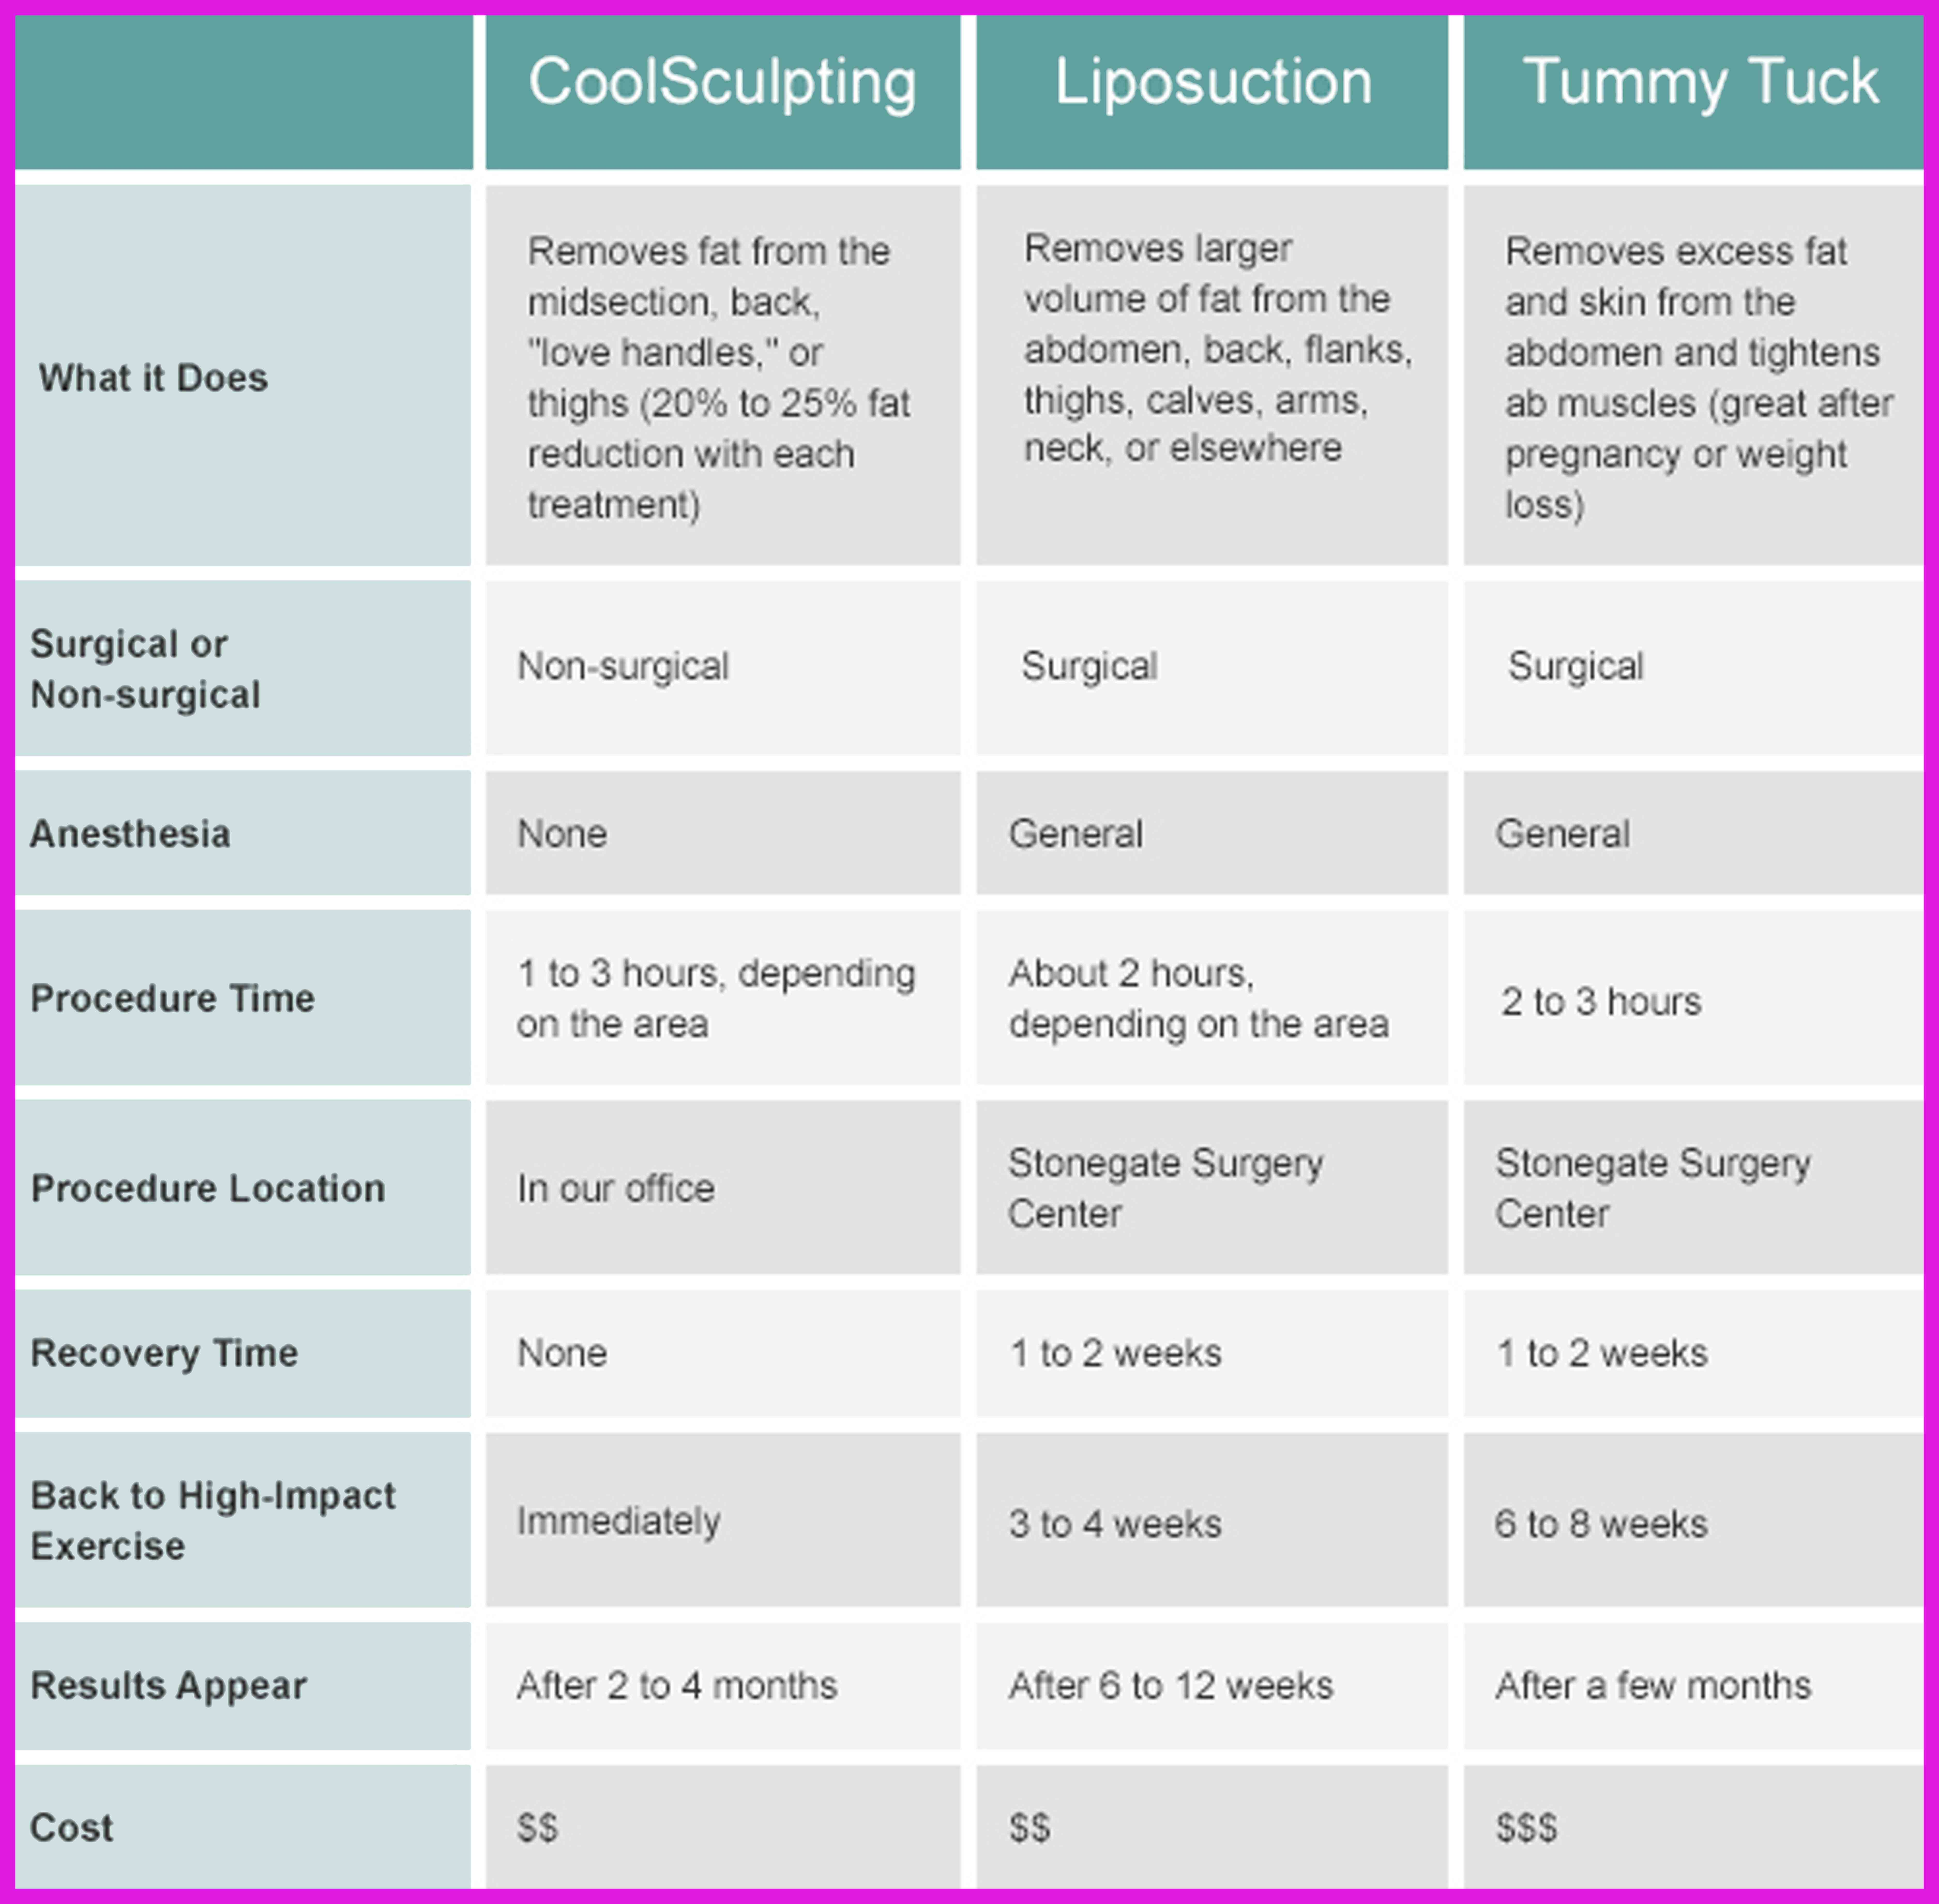 Lipo vs Tummytuck Vs Coolsculpting